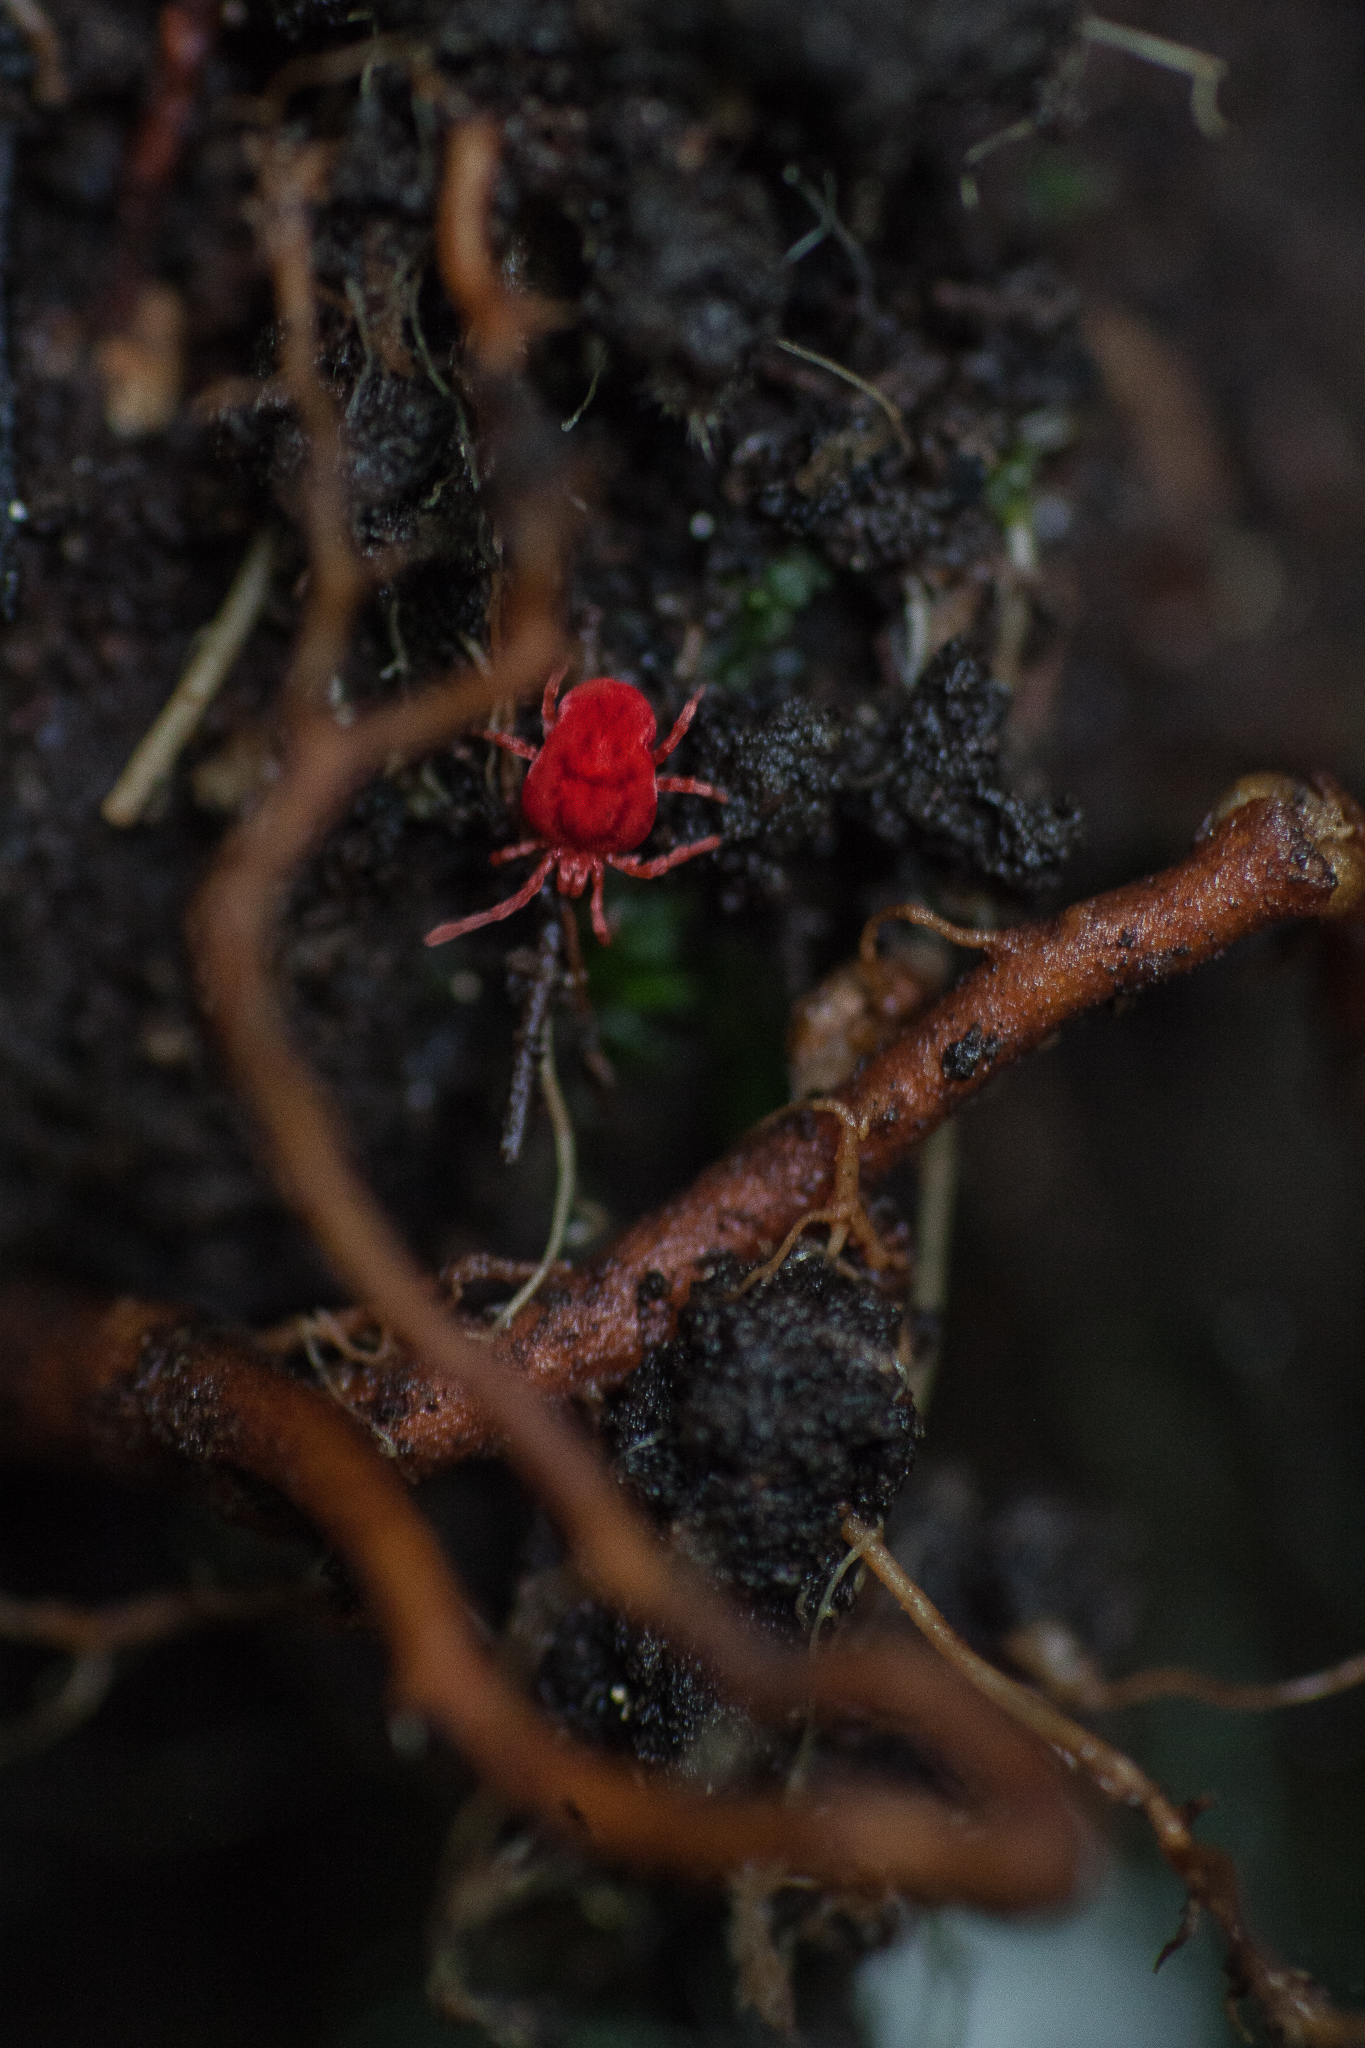 Brightly colored velvet mites (Trombidiidae) like this one emerge from the forest litter after a rain to hunt for other small invertebrates.